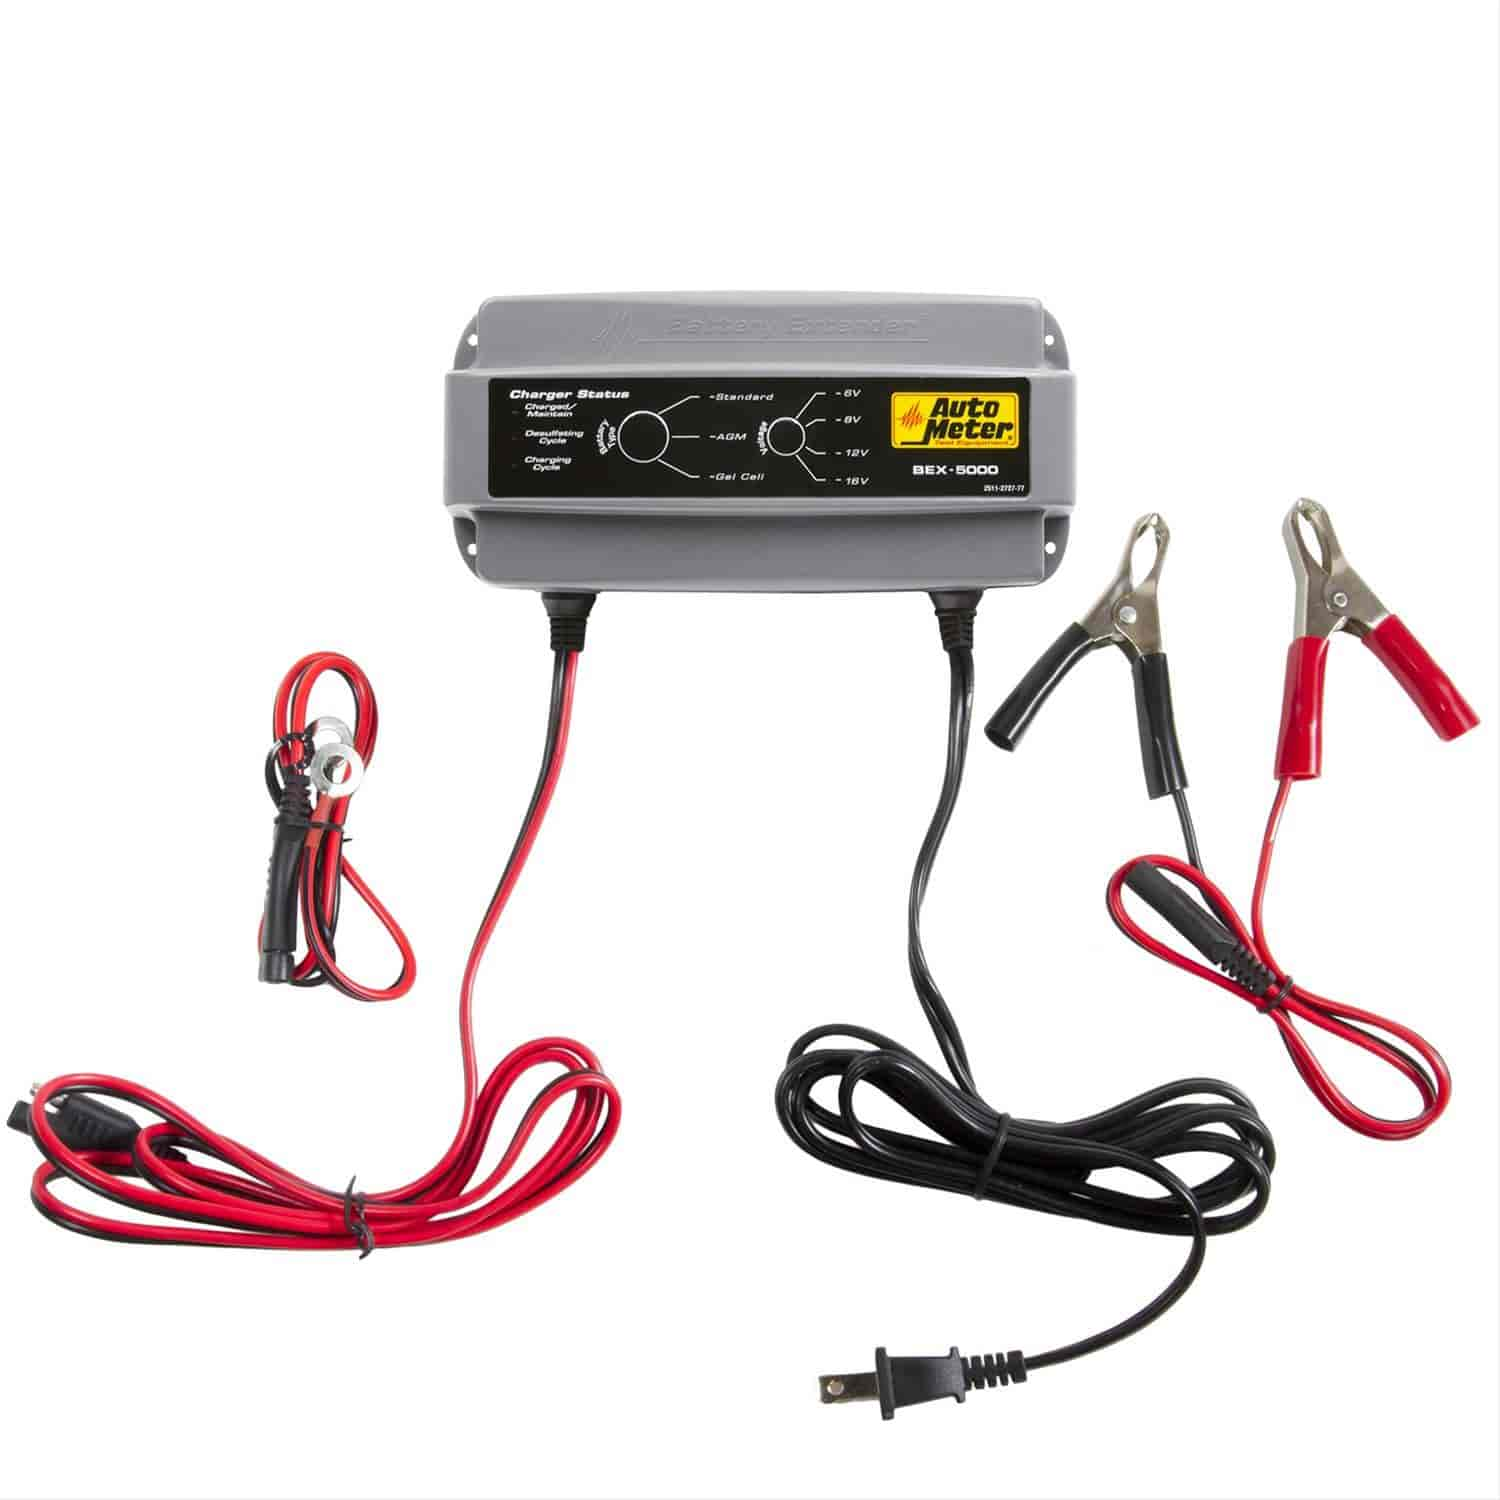 Auto Meter Bex 5000 Battery Extender 6 8 12 16 Volts 50 Amp Jegs Sears Charger Parts As Well Desulfator Circuit In